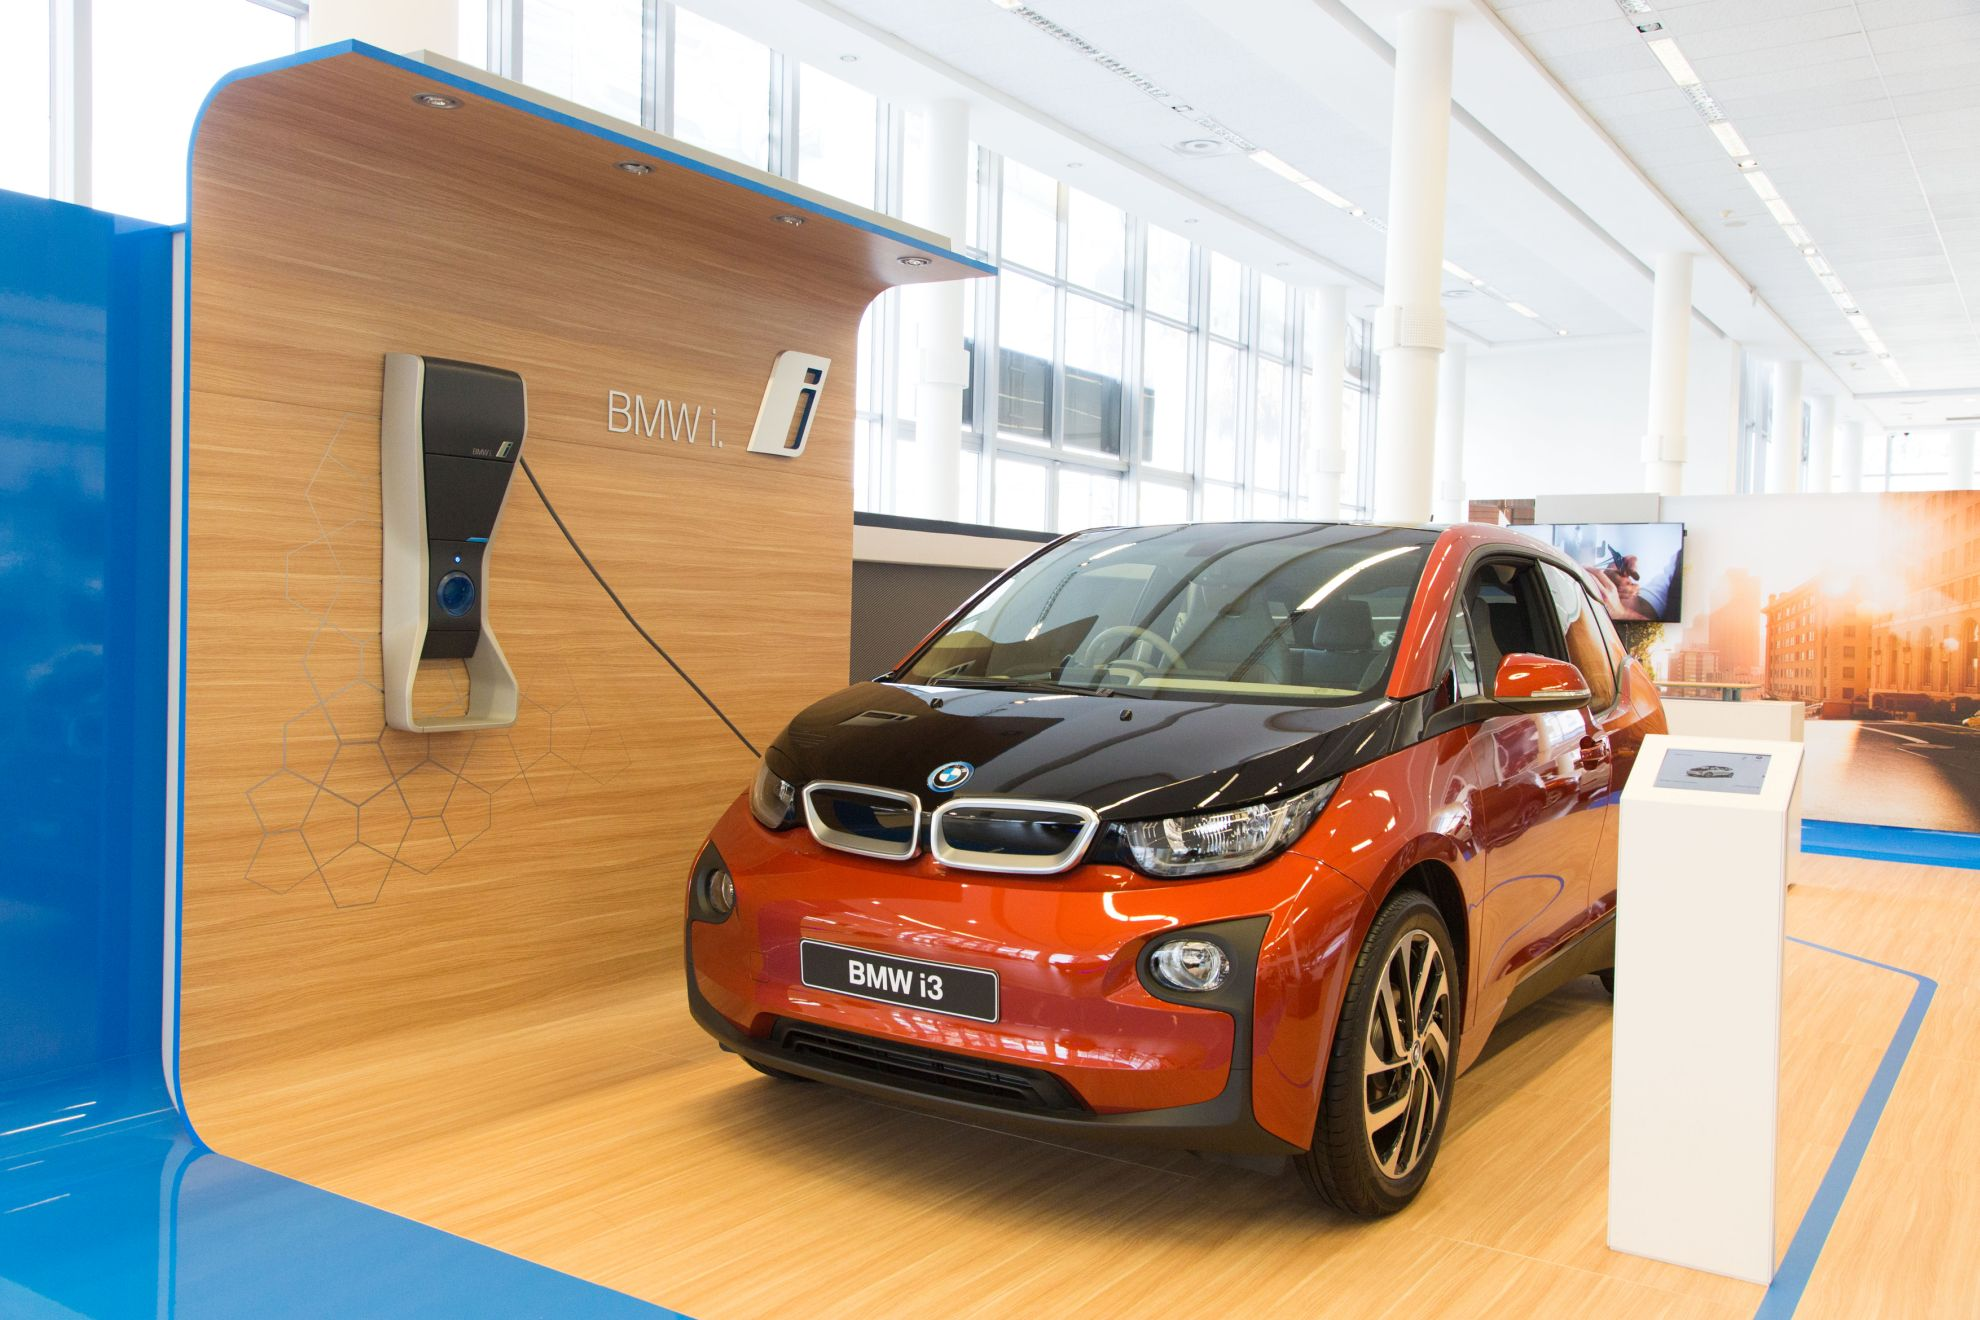 bmw-south-africa-introduces-the-future-of-retailing-to-its-dealerships-1